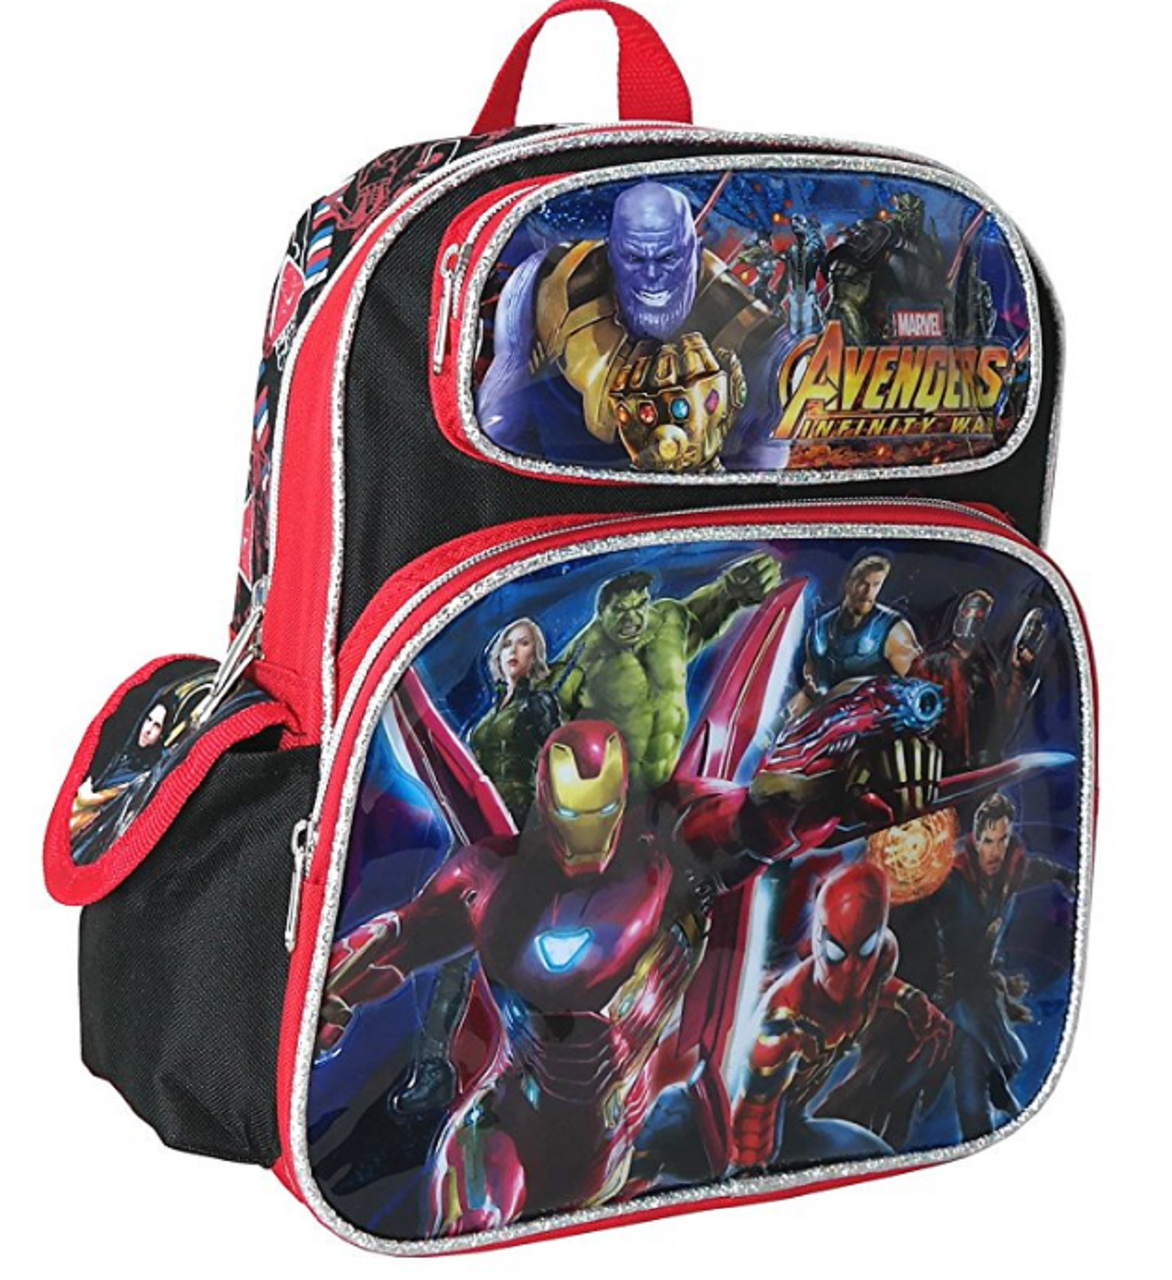 Backpack - Avengers: Infinity Wars - 12 Inch Small / Toddler